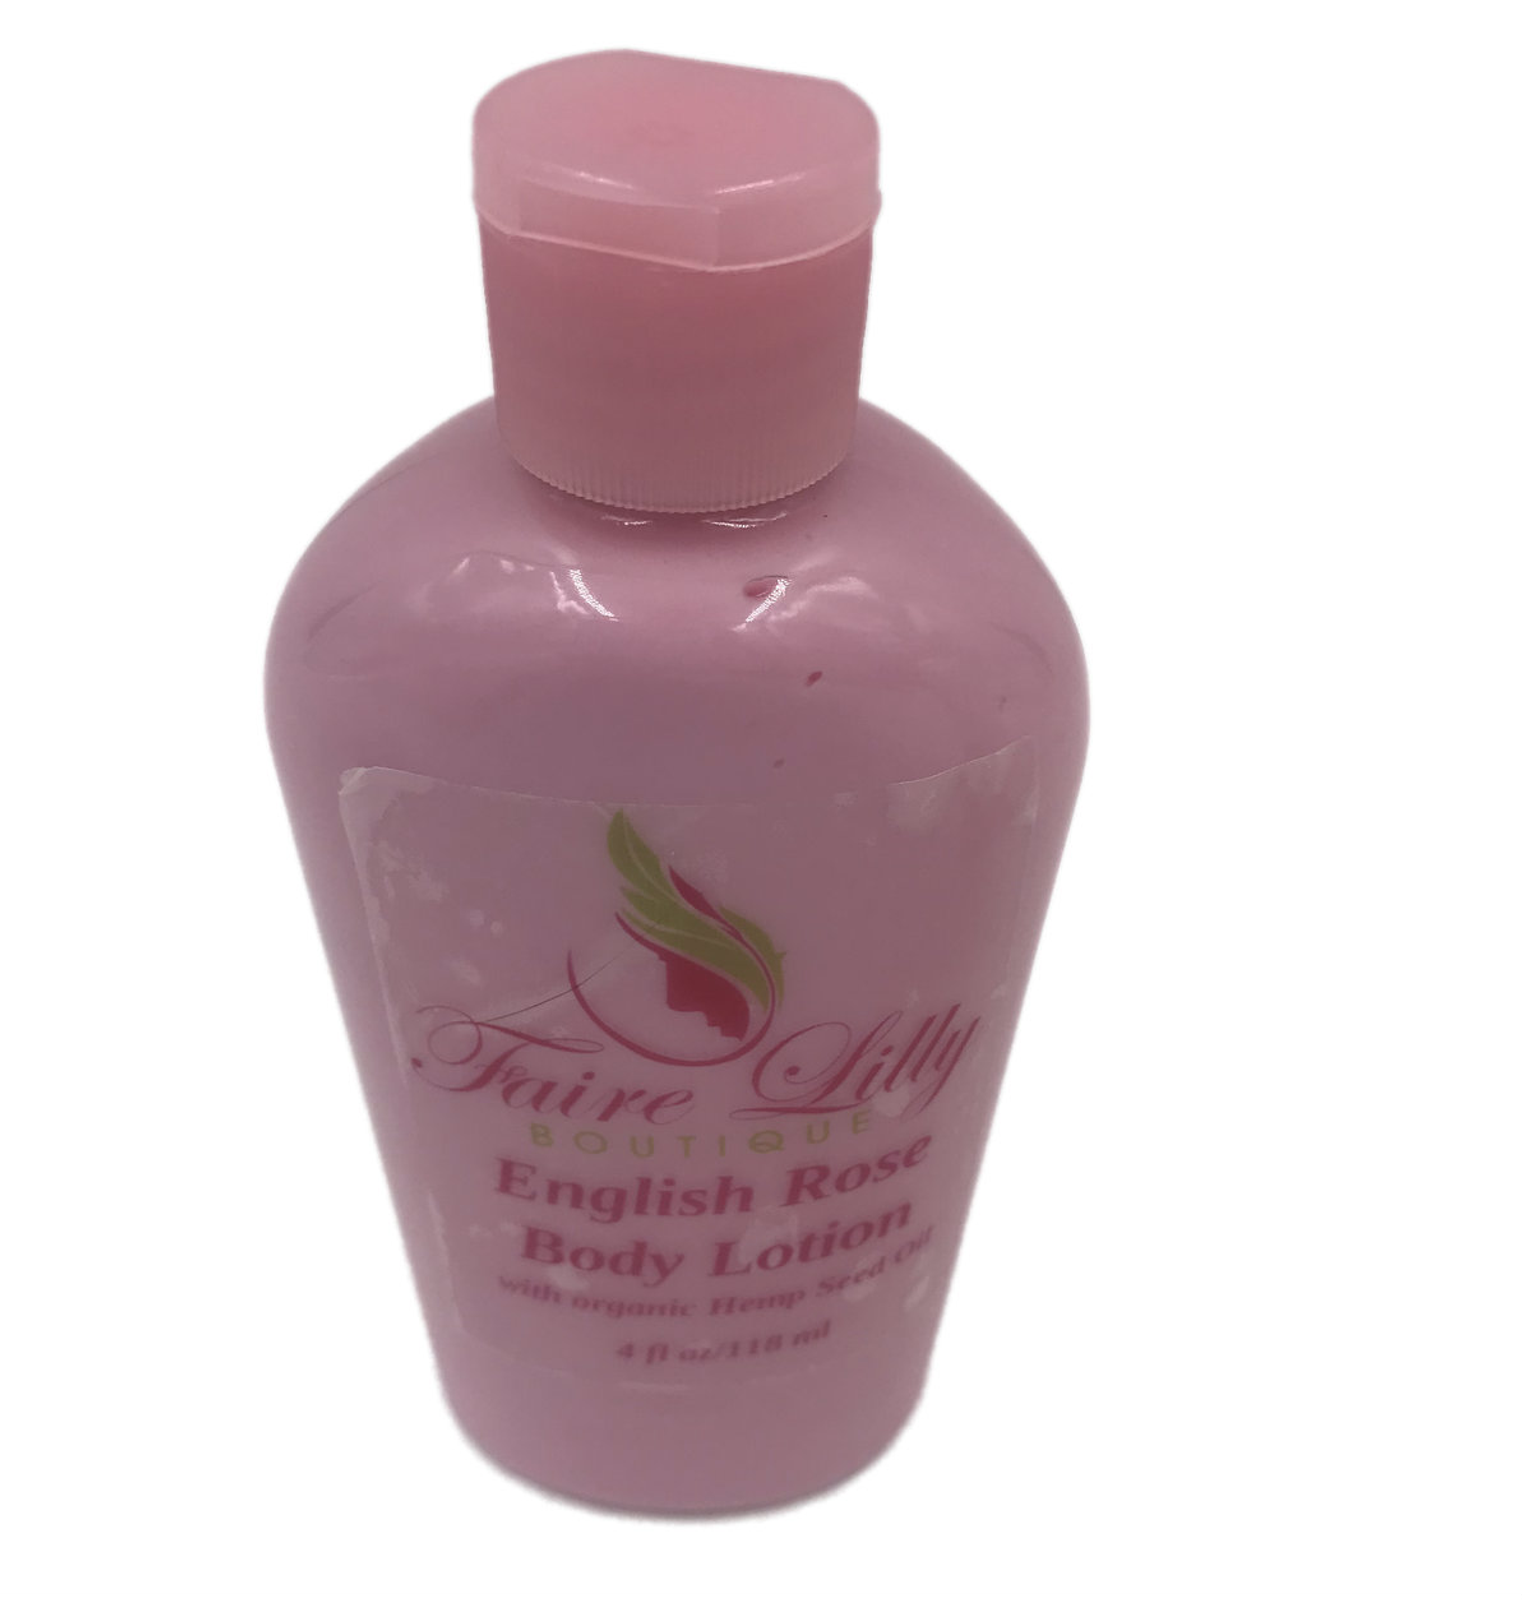 English Rose Hemp Seed Oil Lotion